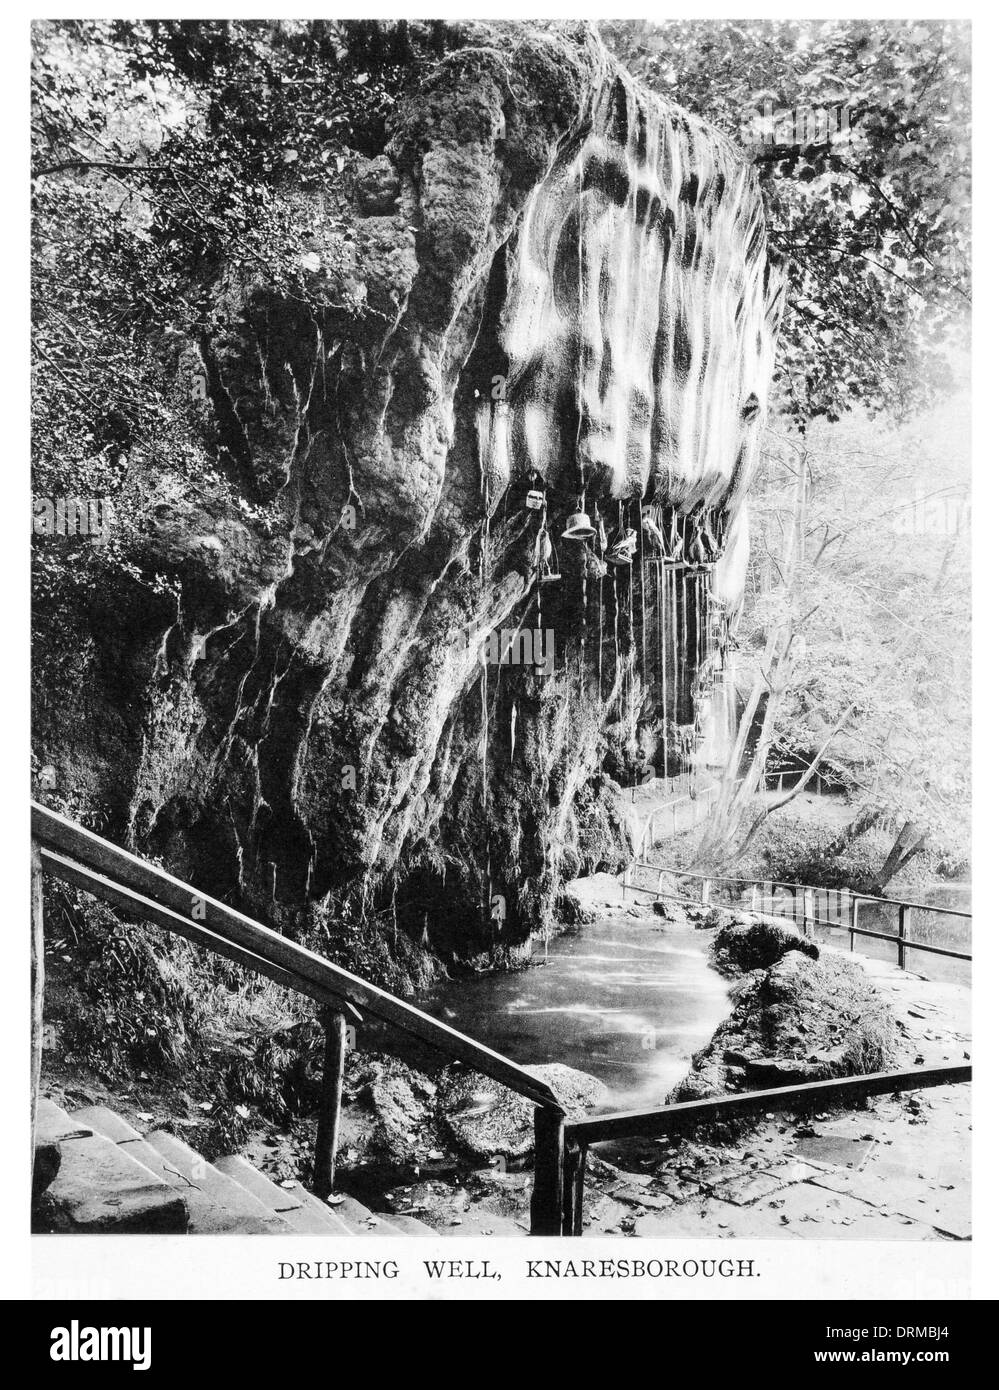 Dripping Well, Knaresborough Yorkshire Photographed Circa 1910 - Stock Image